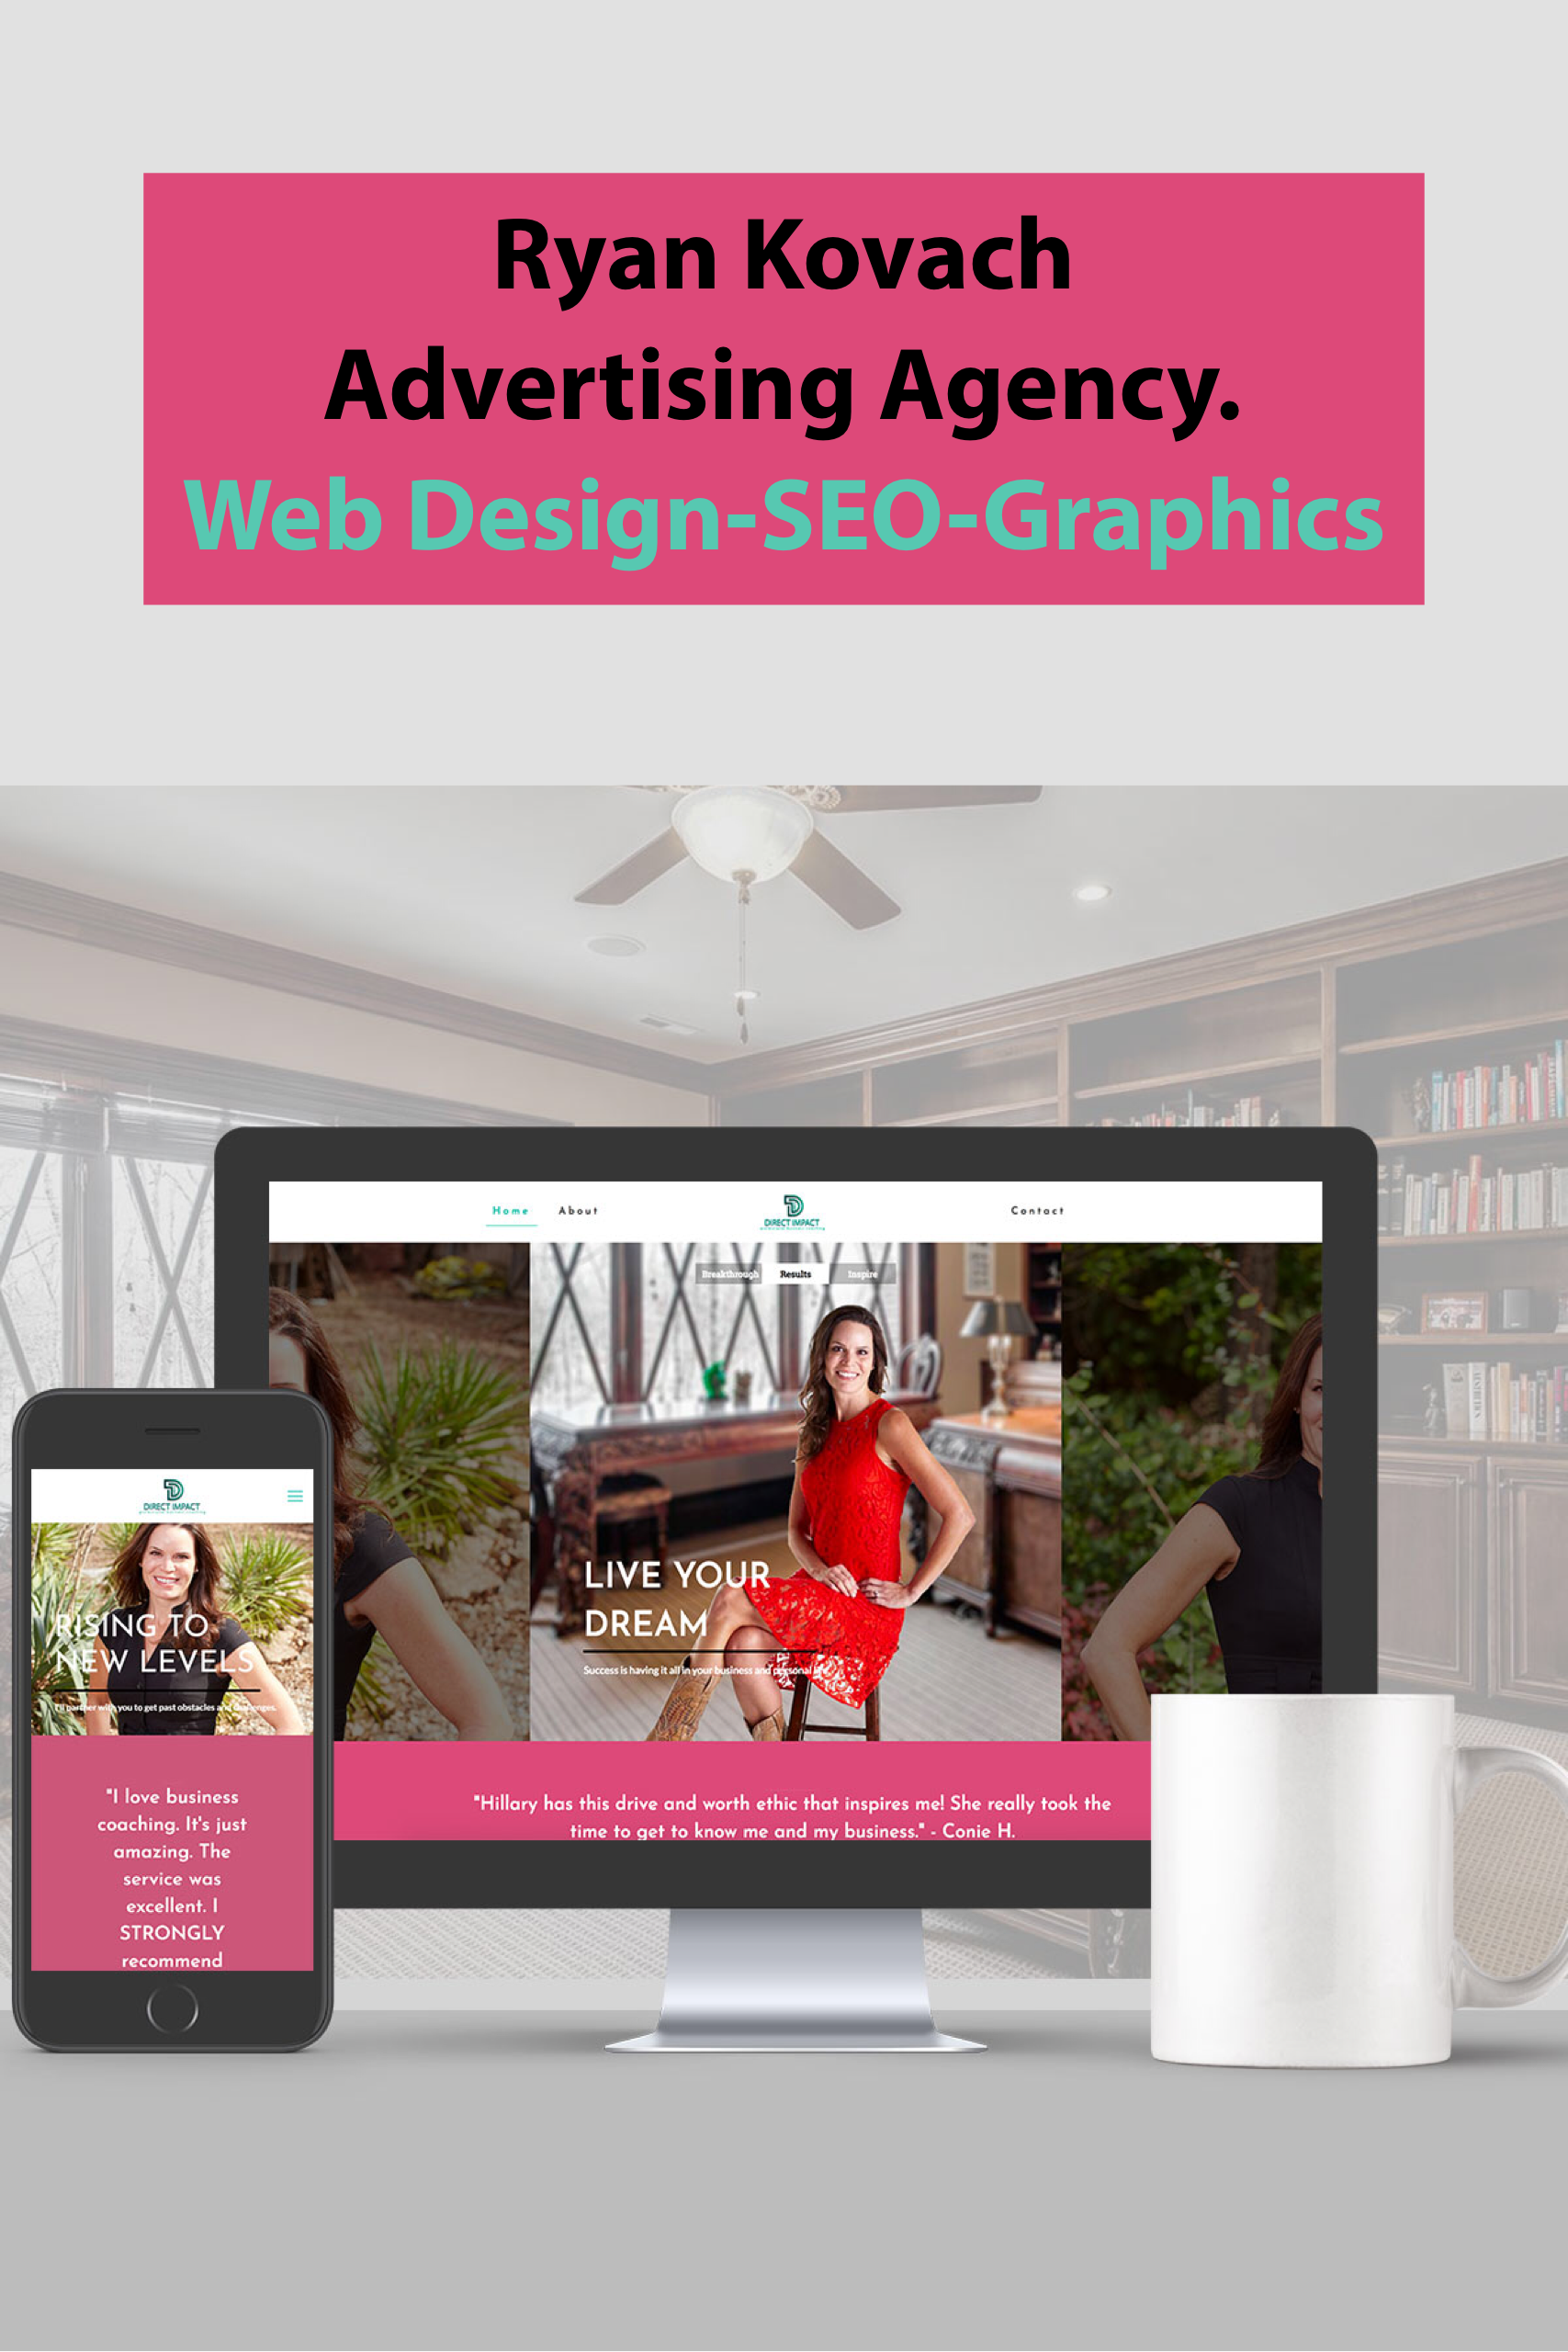 This Is A Web Design For An Online Business Coach Logo Design Web Development And Design Fort Online Coaching Business Coaching Business Business Coach Logo